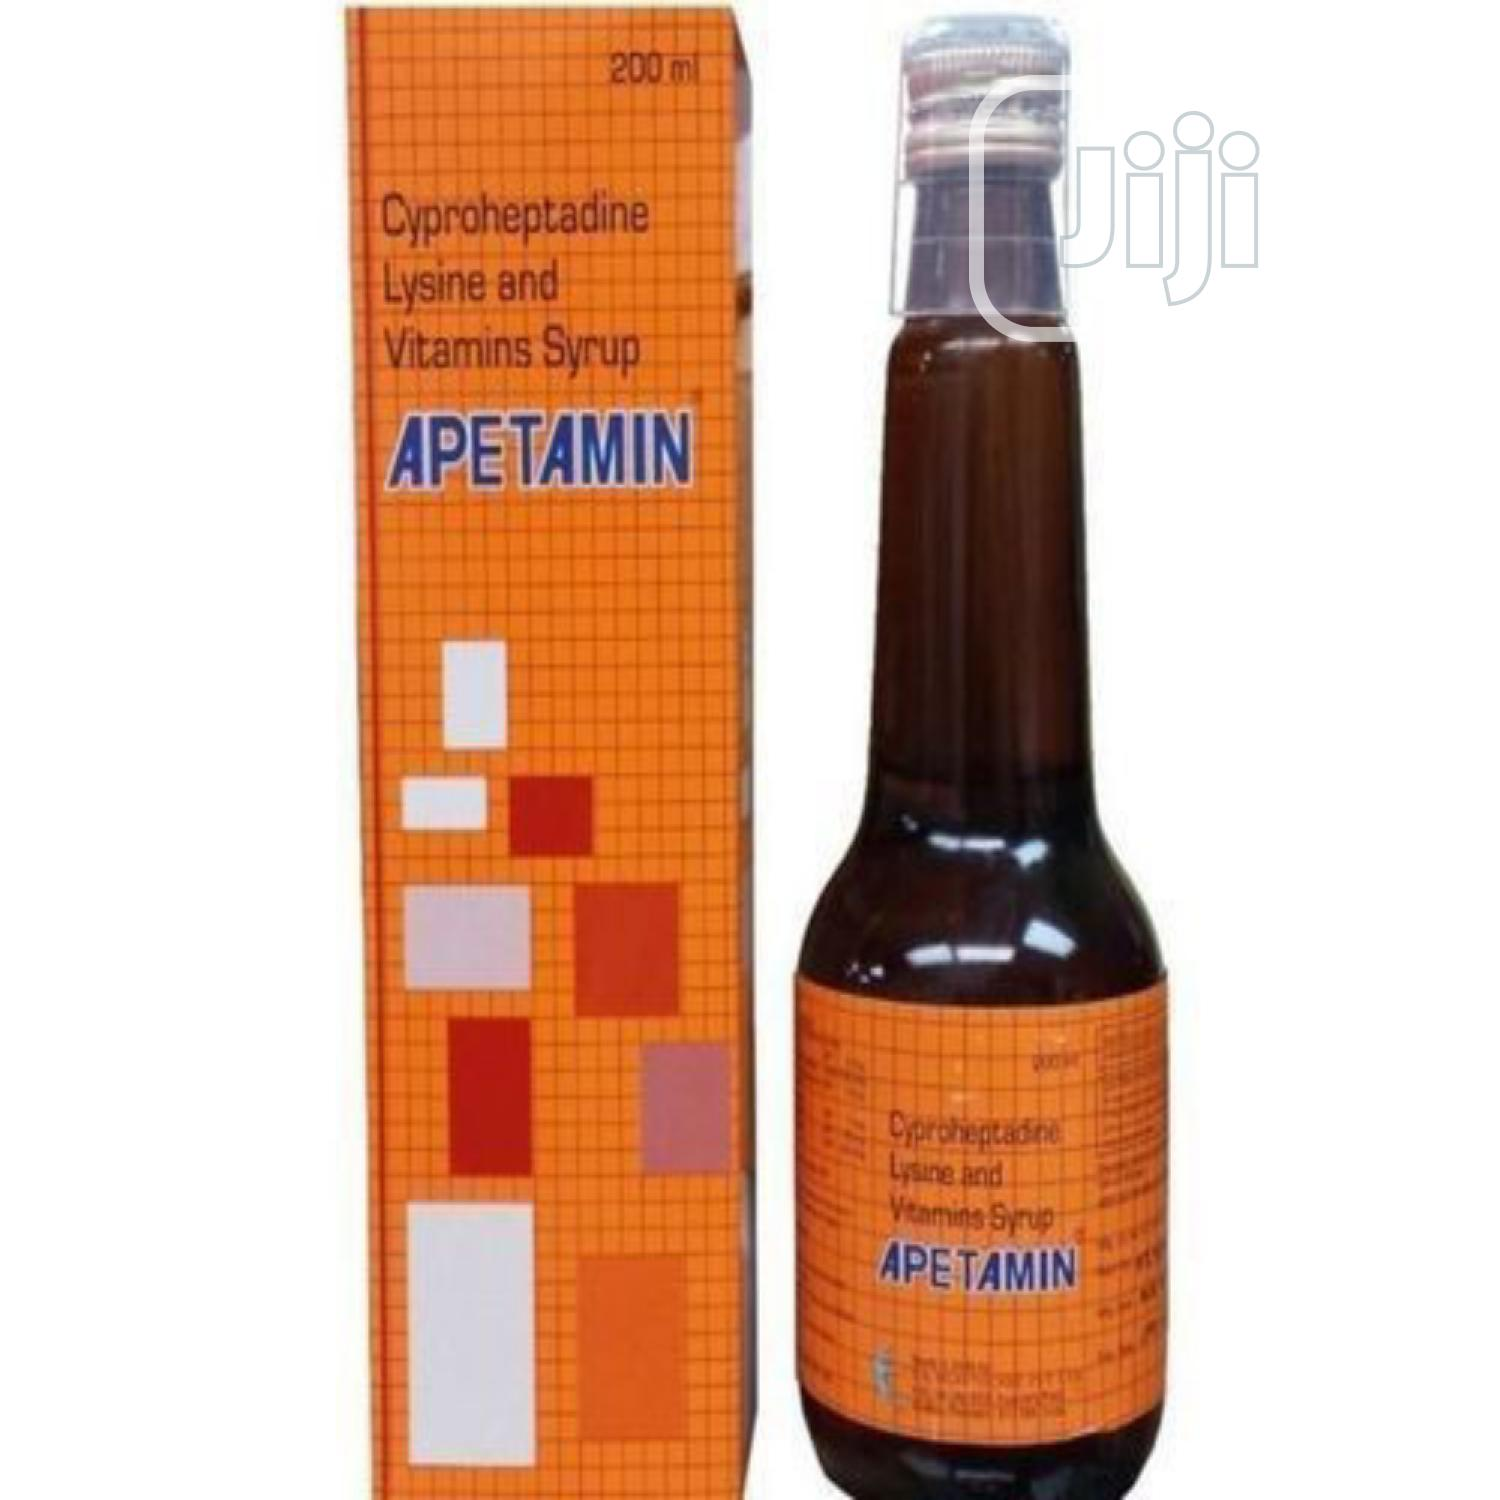 Apetamin Syrup for Weight Gain Hips, Breast Cuves, Butts